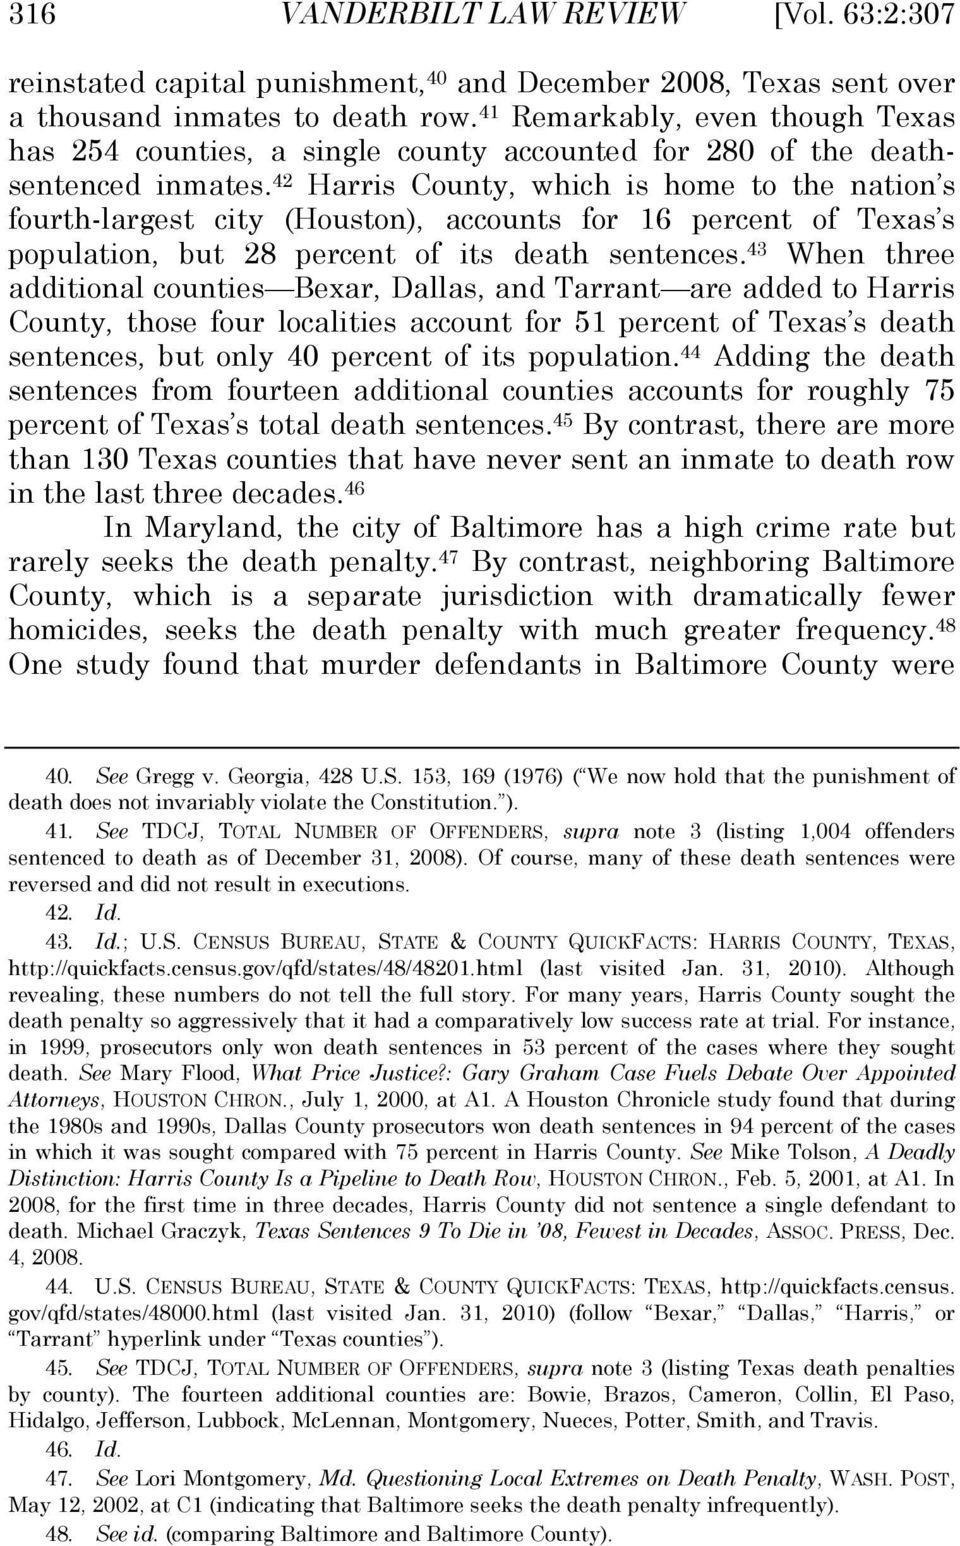 42 Harris County, which is home to the nation s fourth-largest city (Houston), accounts for 16 percent of Texas s population, but 28 percent of its death sentences.